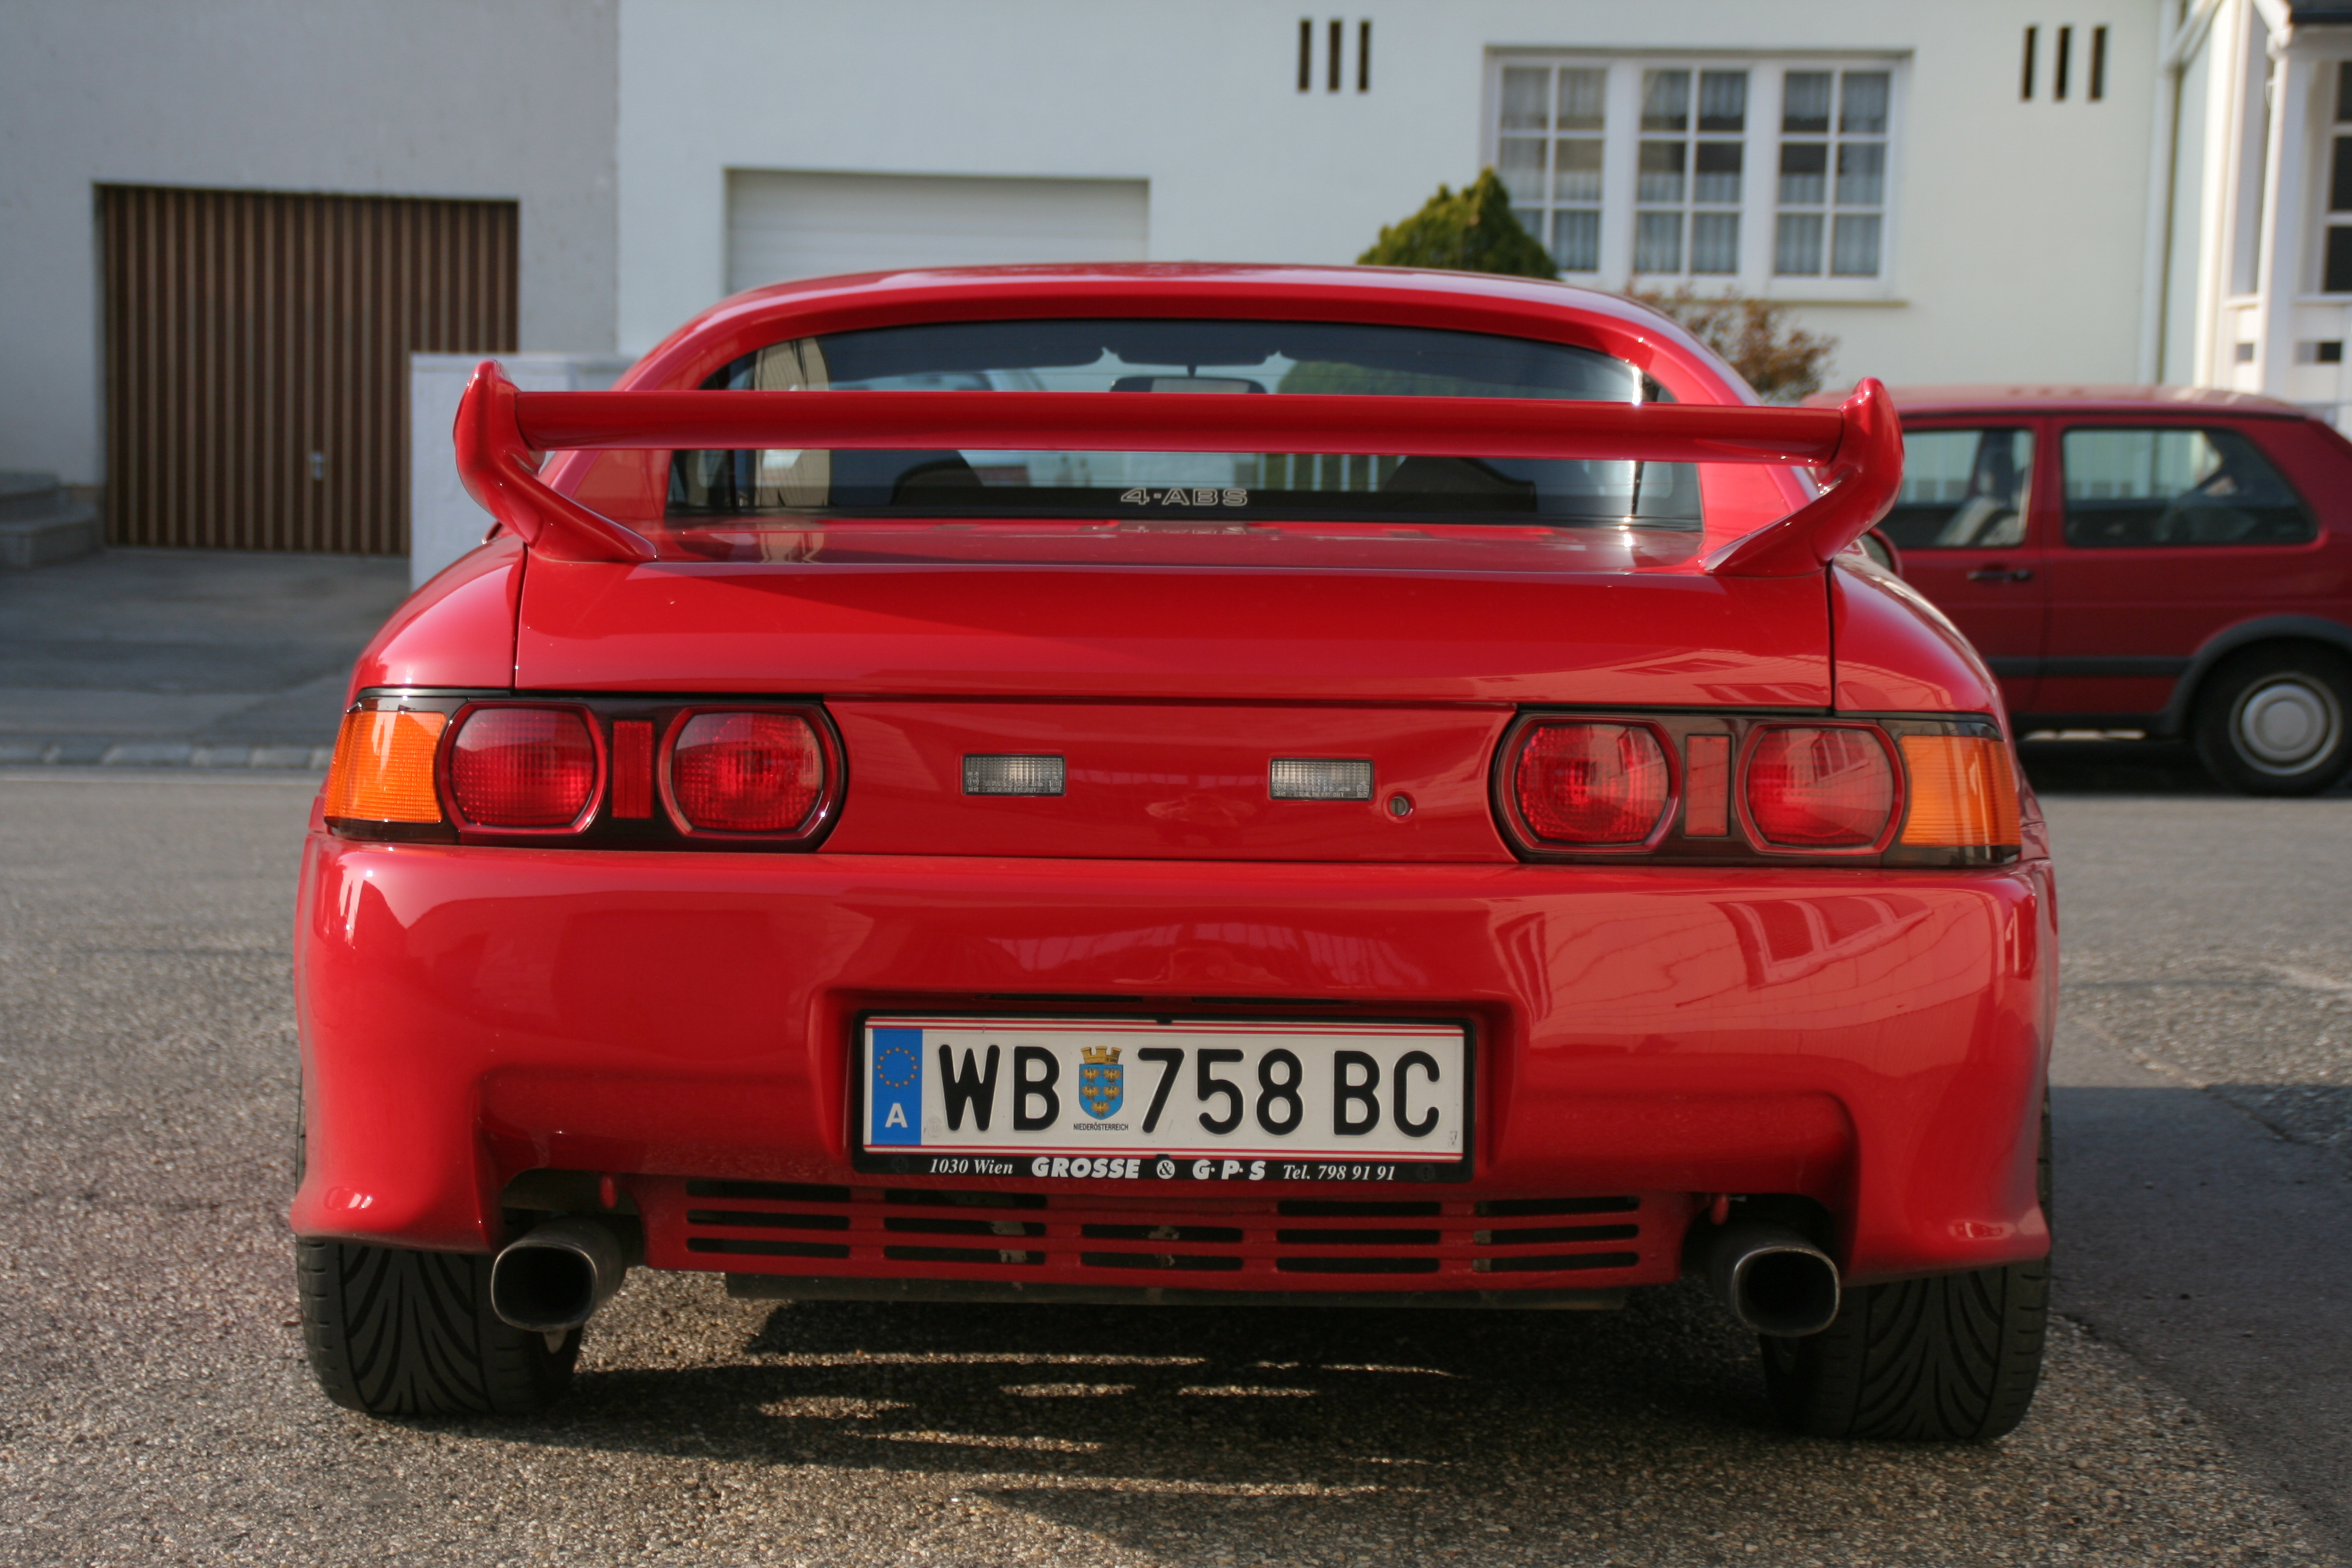 Stolzi S Awesome Mr2 Sw20 Rear